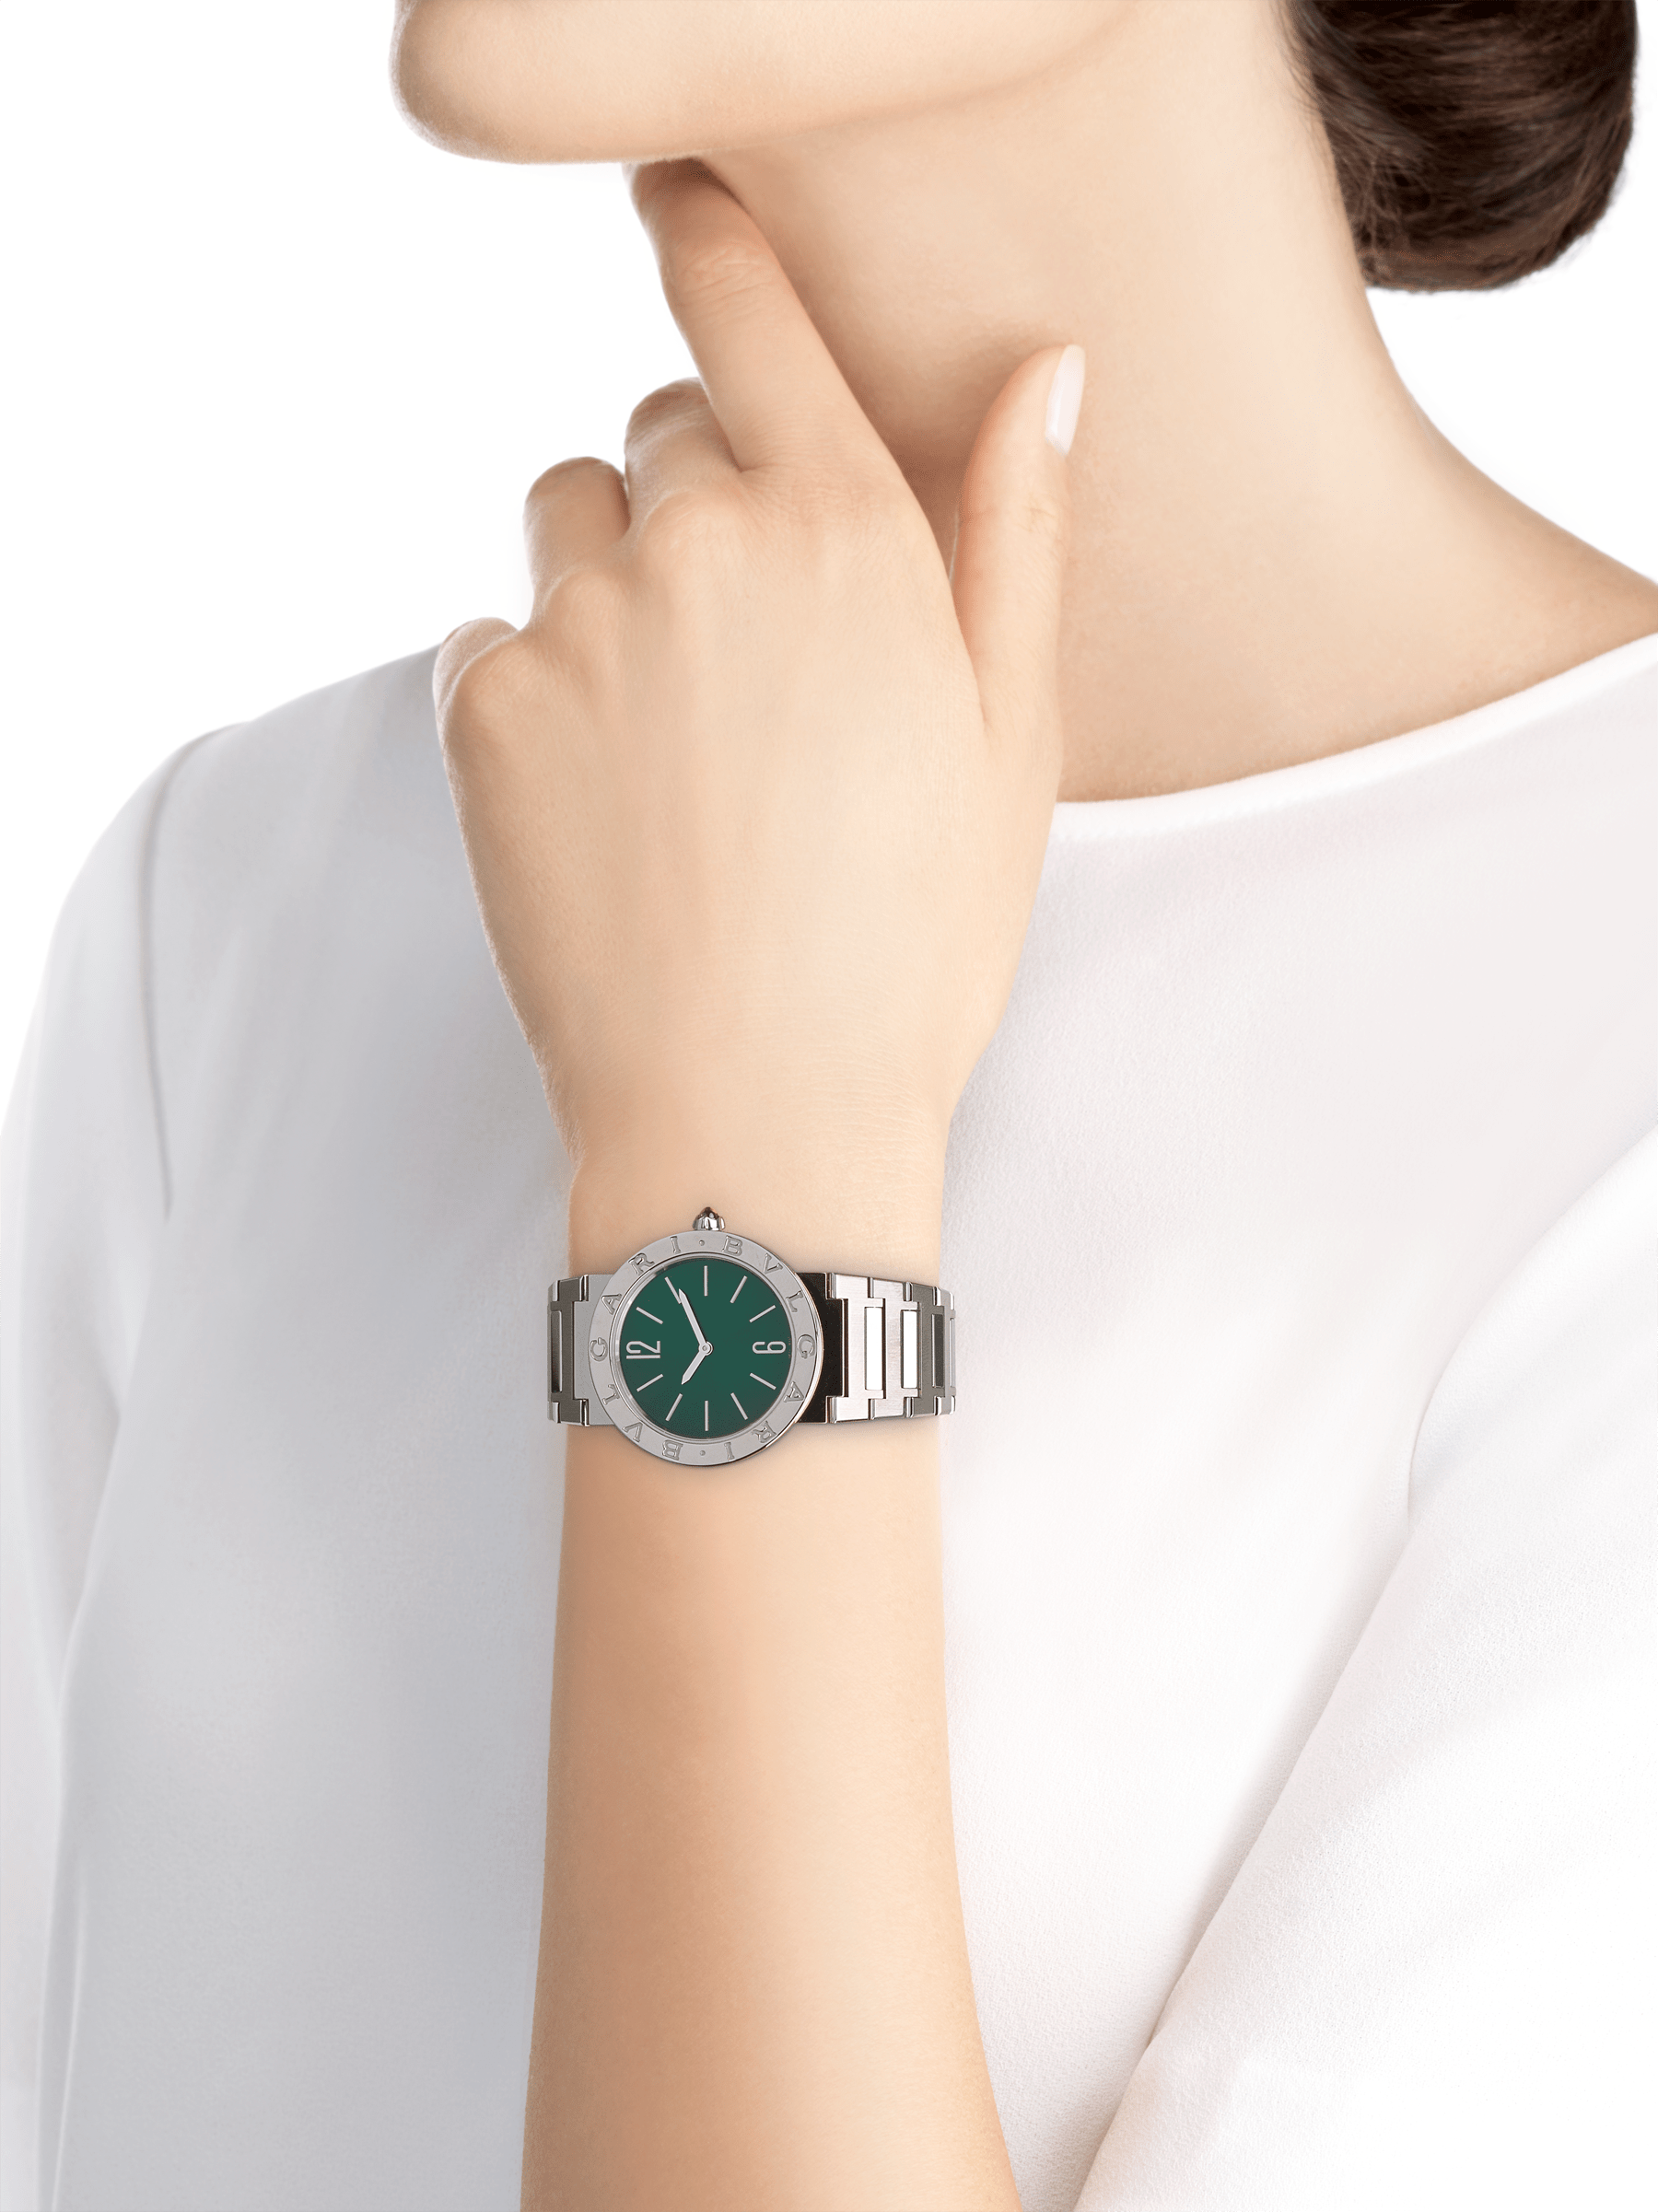 BVLGARI BVLGARI LADY watch with stainless steel case, stainless steel bracelet, stainless steel bezel engraved with double logo and green sun-brushed dial. 103066 image 4